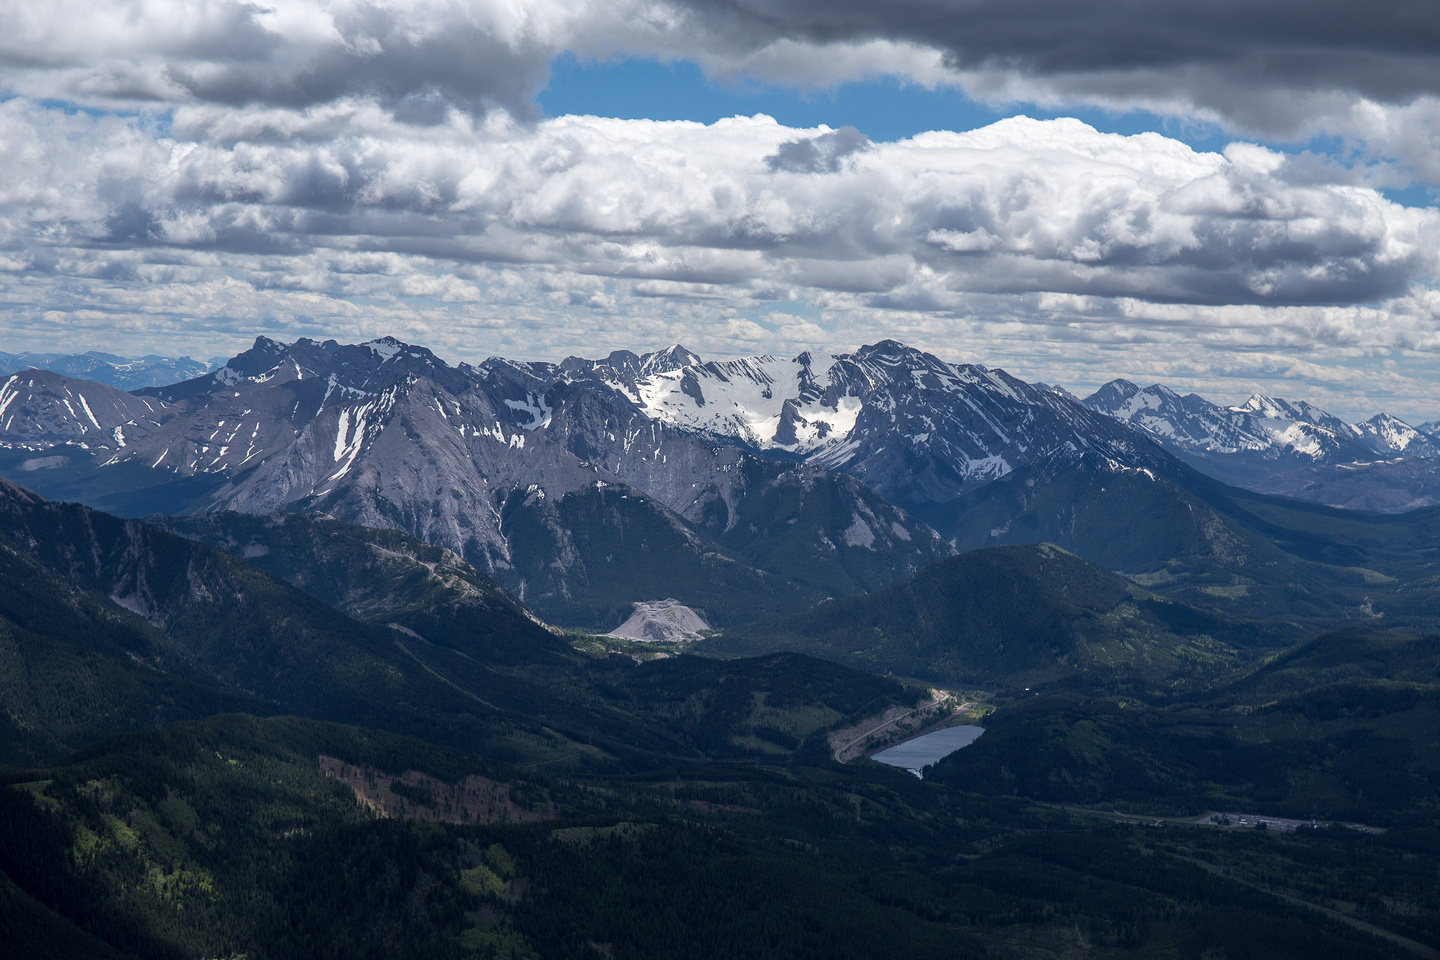 Looking over to Sentry Mountain and McLaren, Parrish and Chinook Peaks.